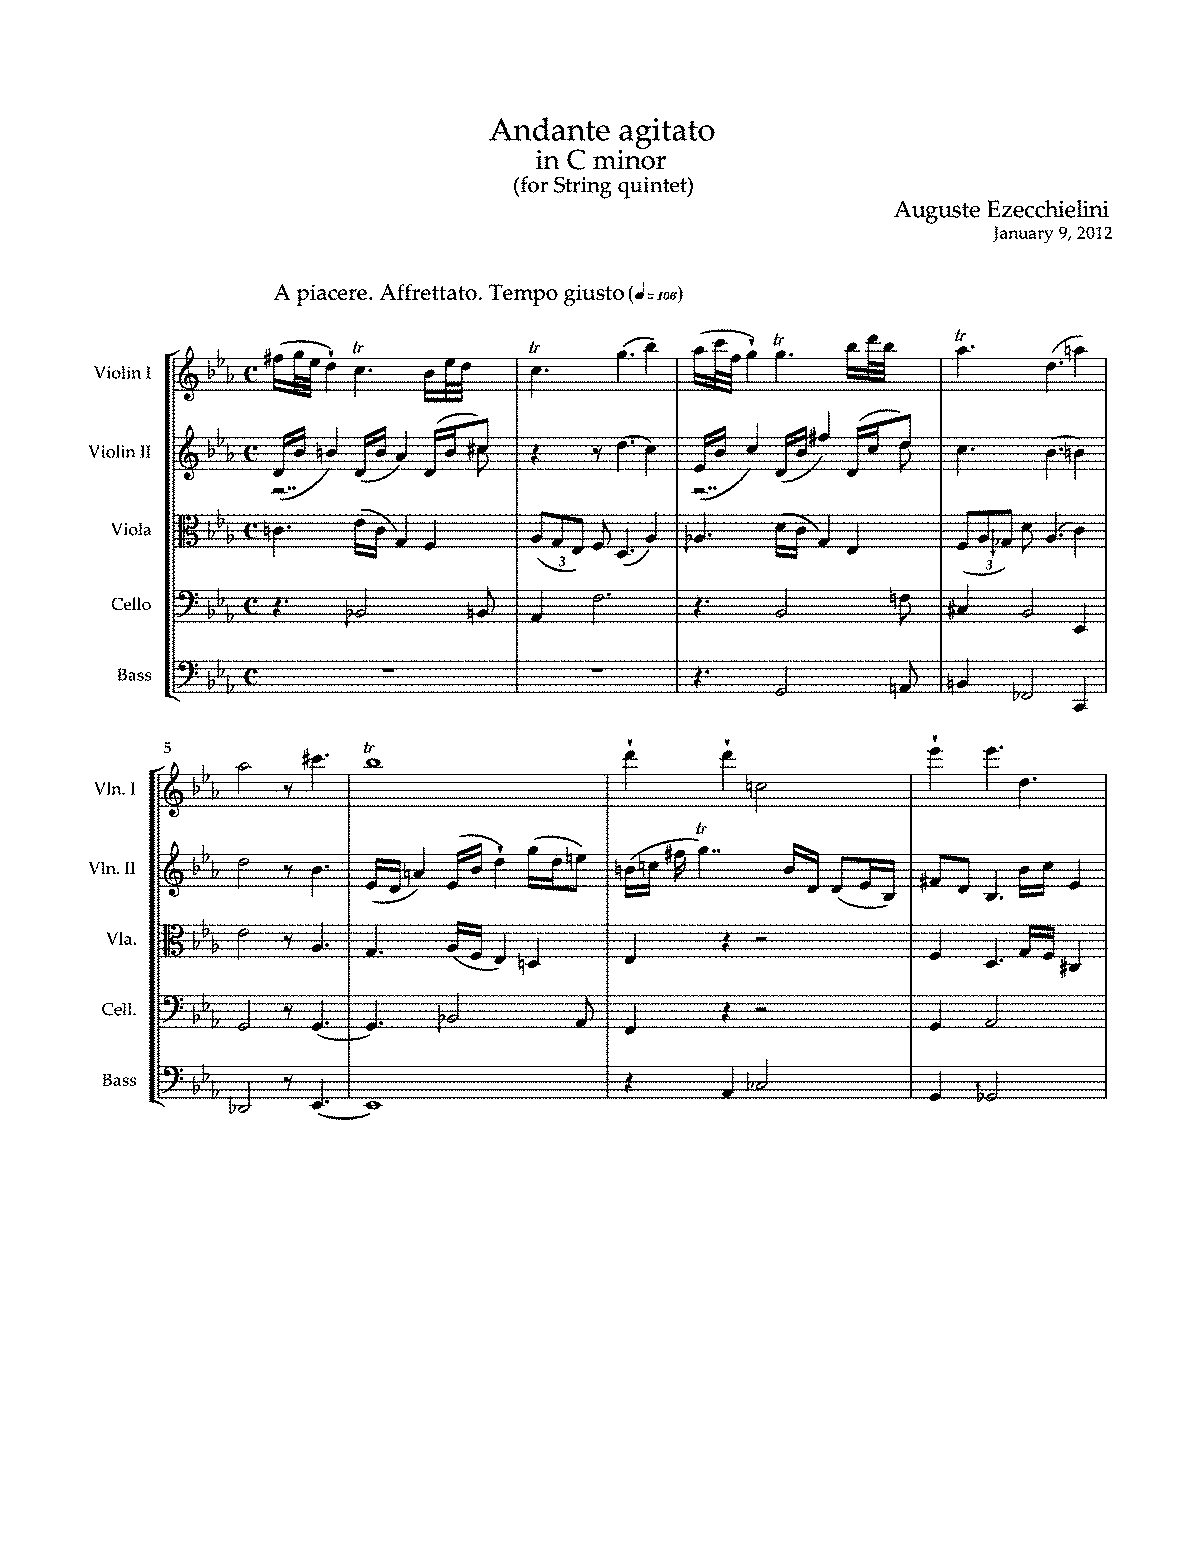 PMLP301111-Andante agitato in C minor (for String quintet) by Auguste Ezecchielini.pdf